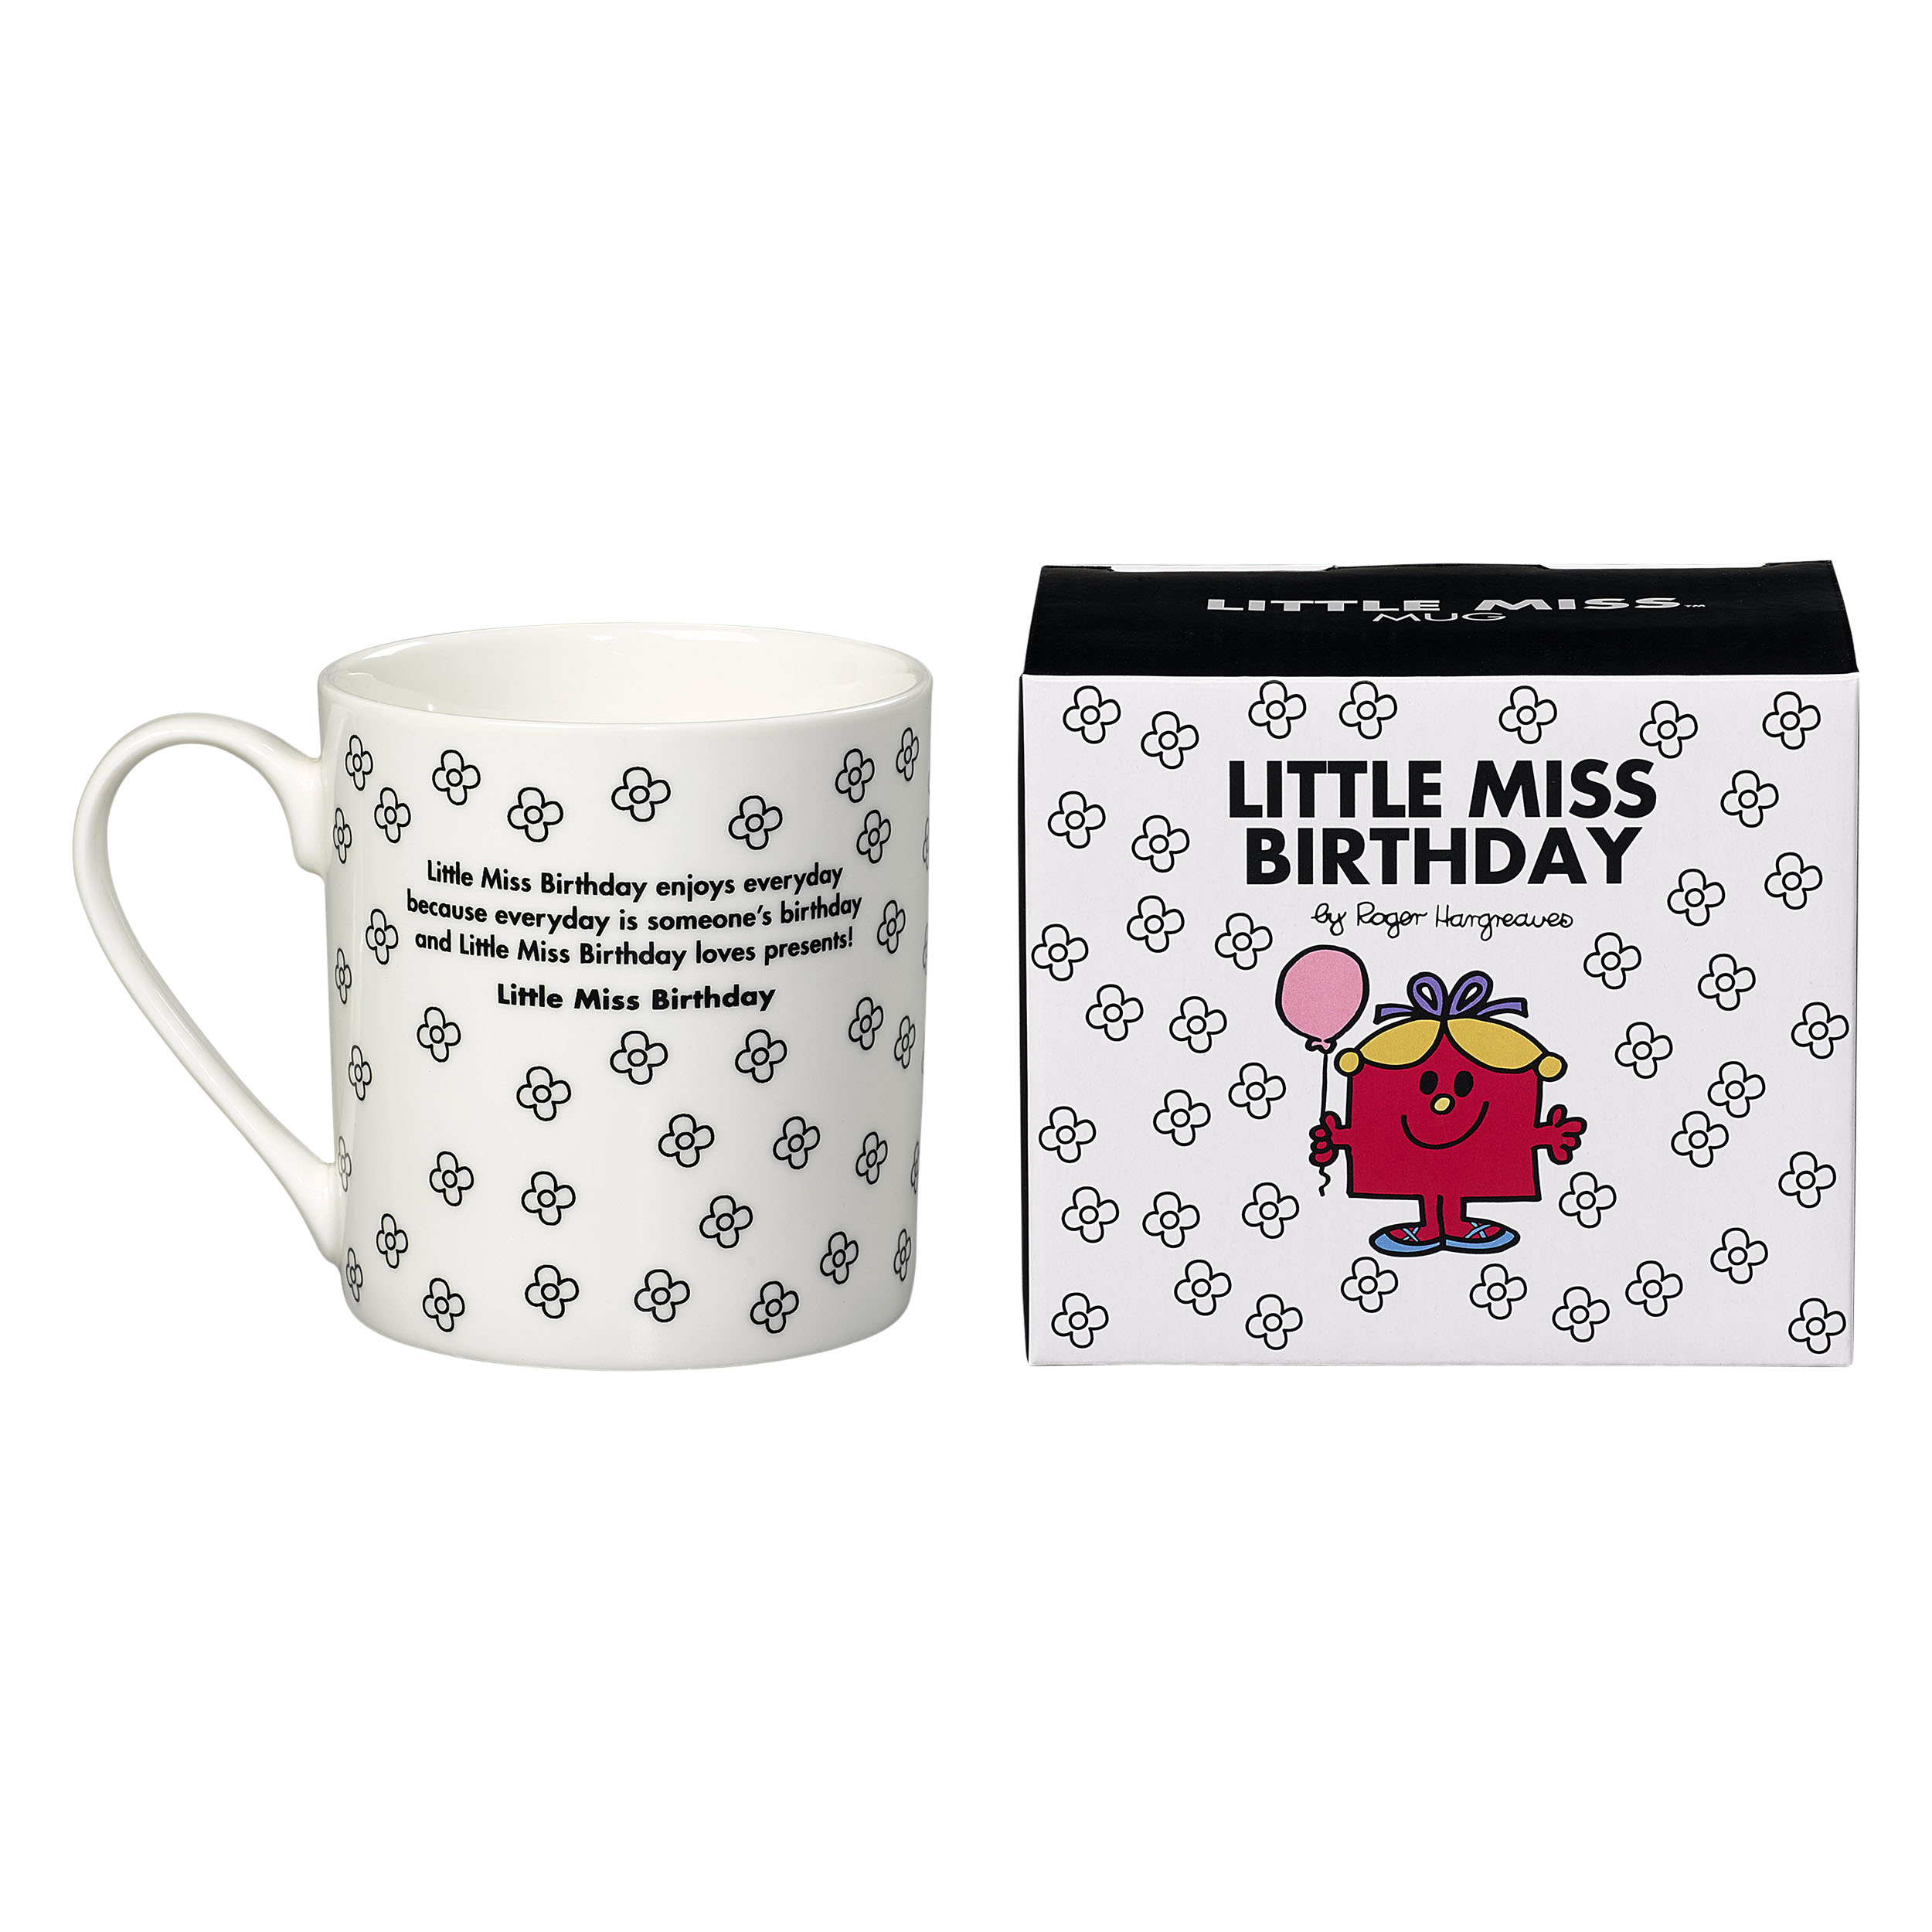 Little Miss Birthday Mug